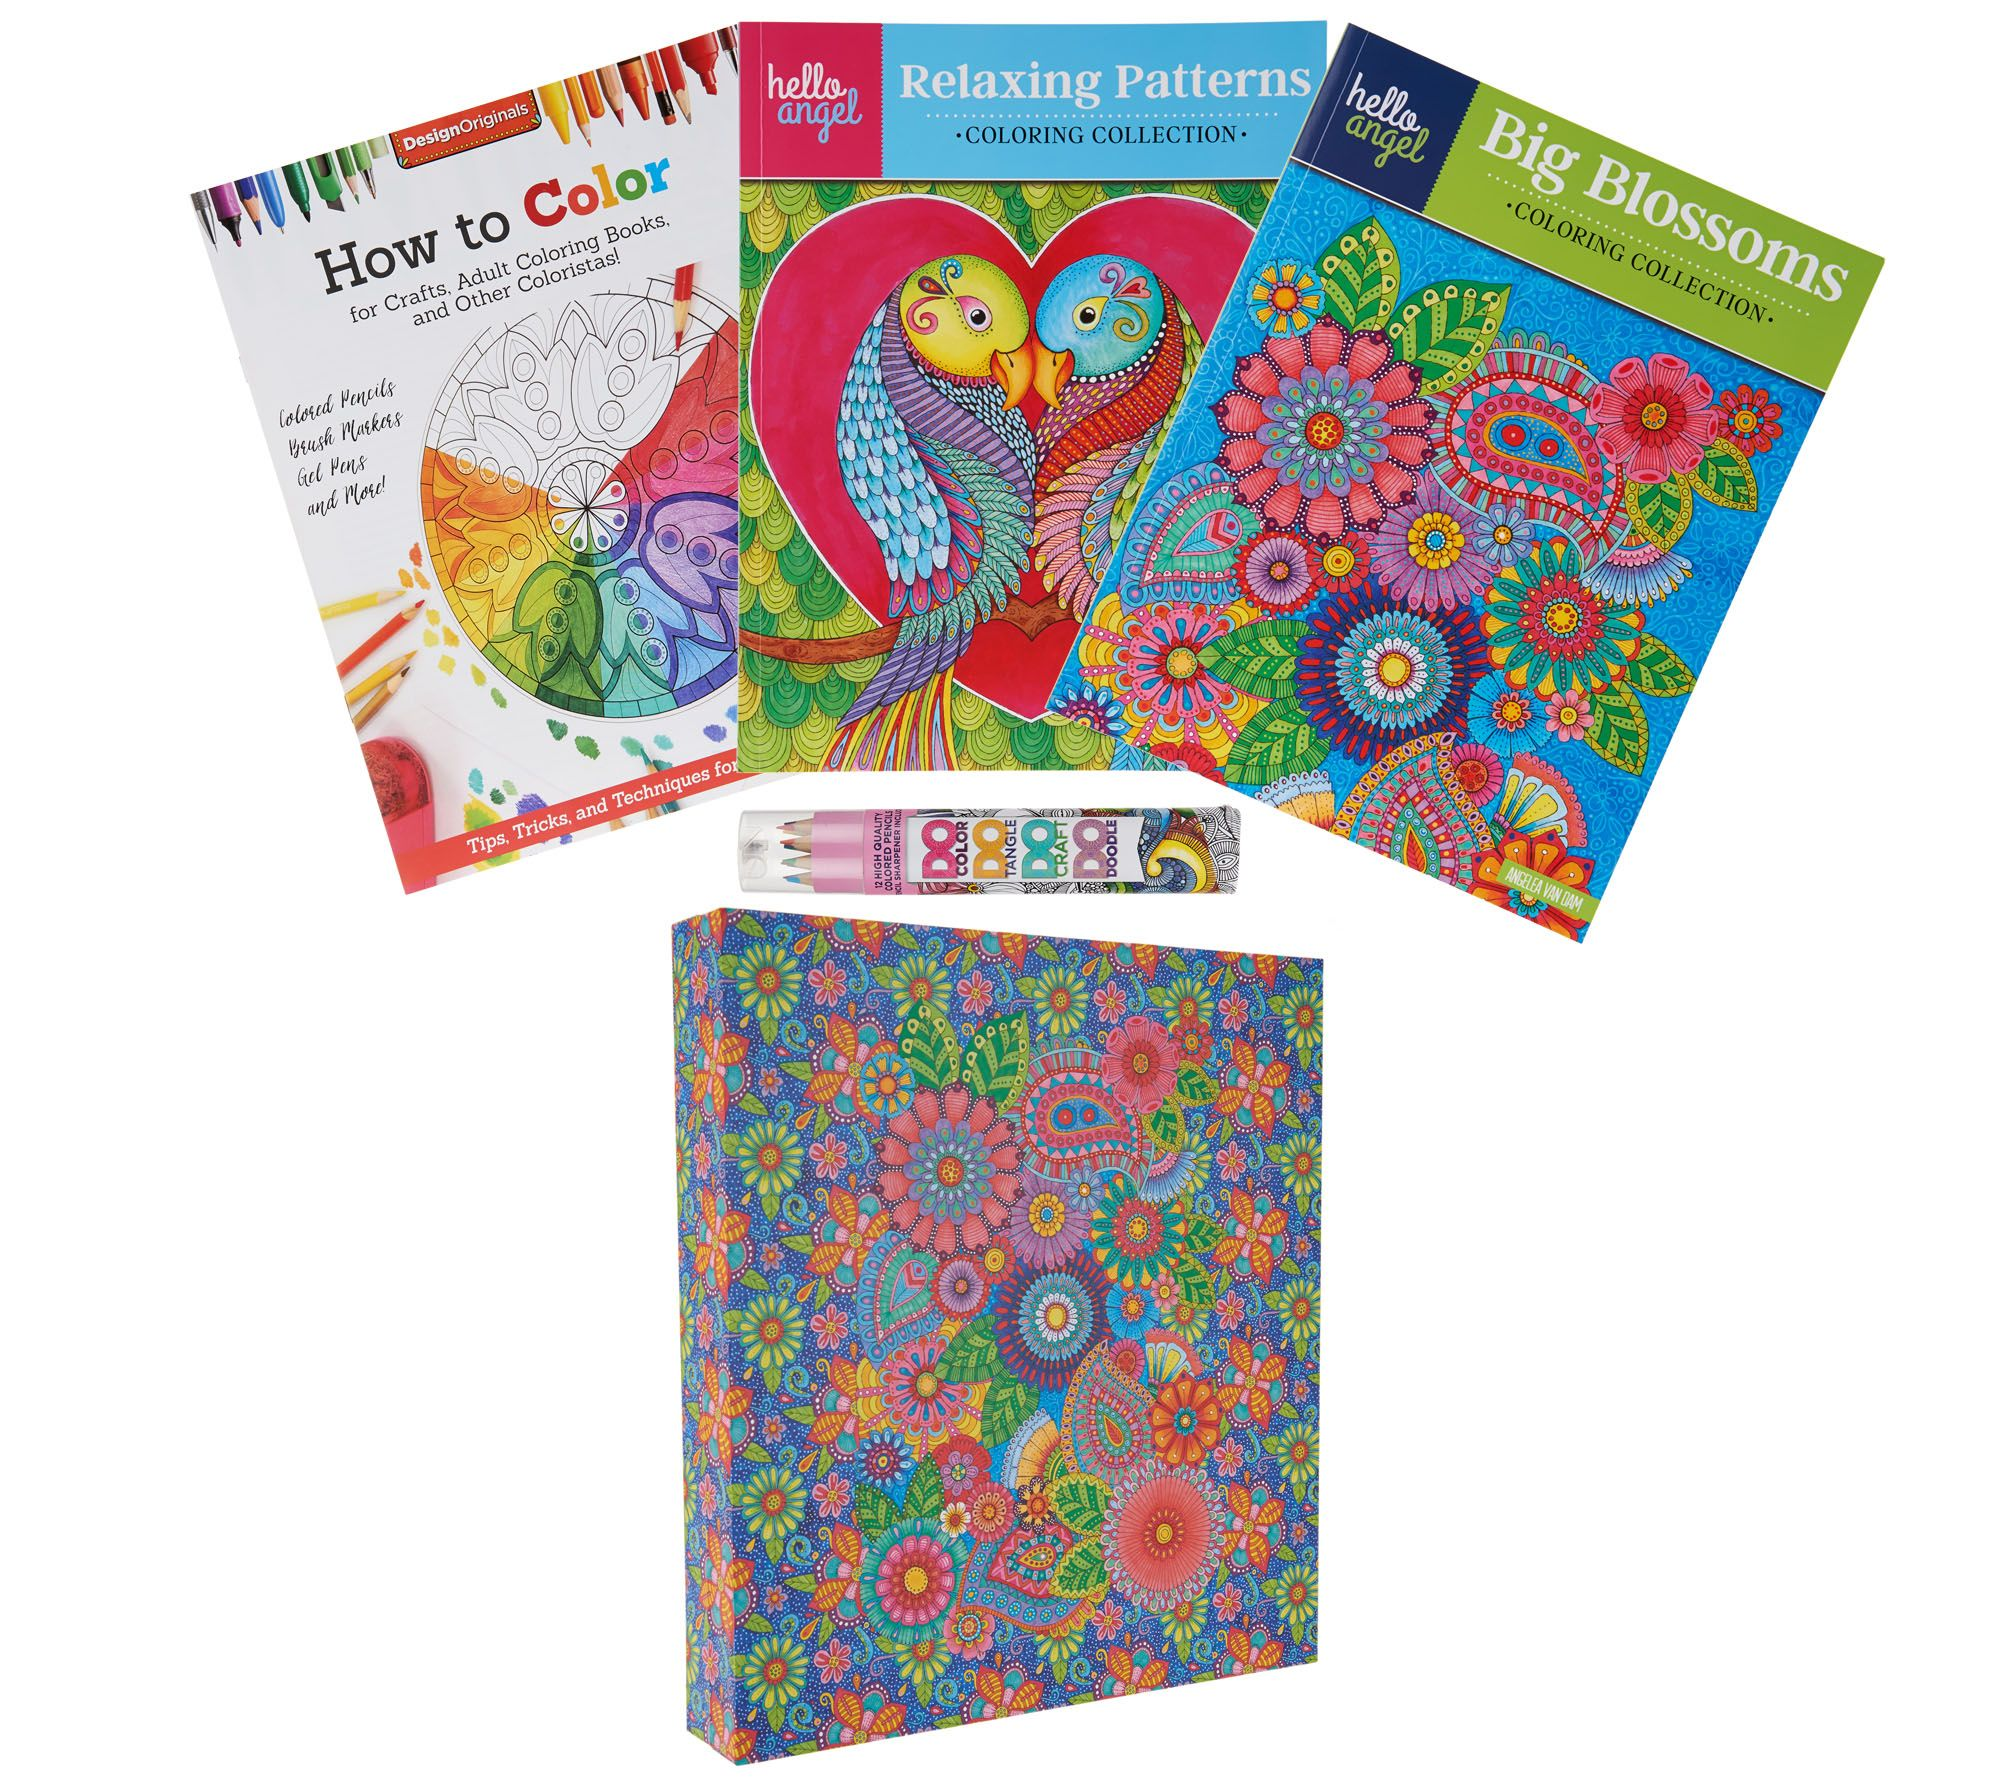 Fox Chapel Set Of 2 Coloring Books 12 Pencils And Gift Box QVC